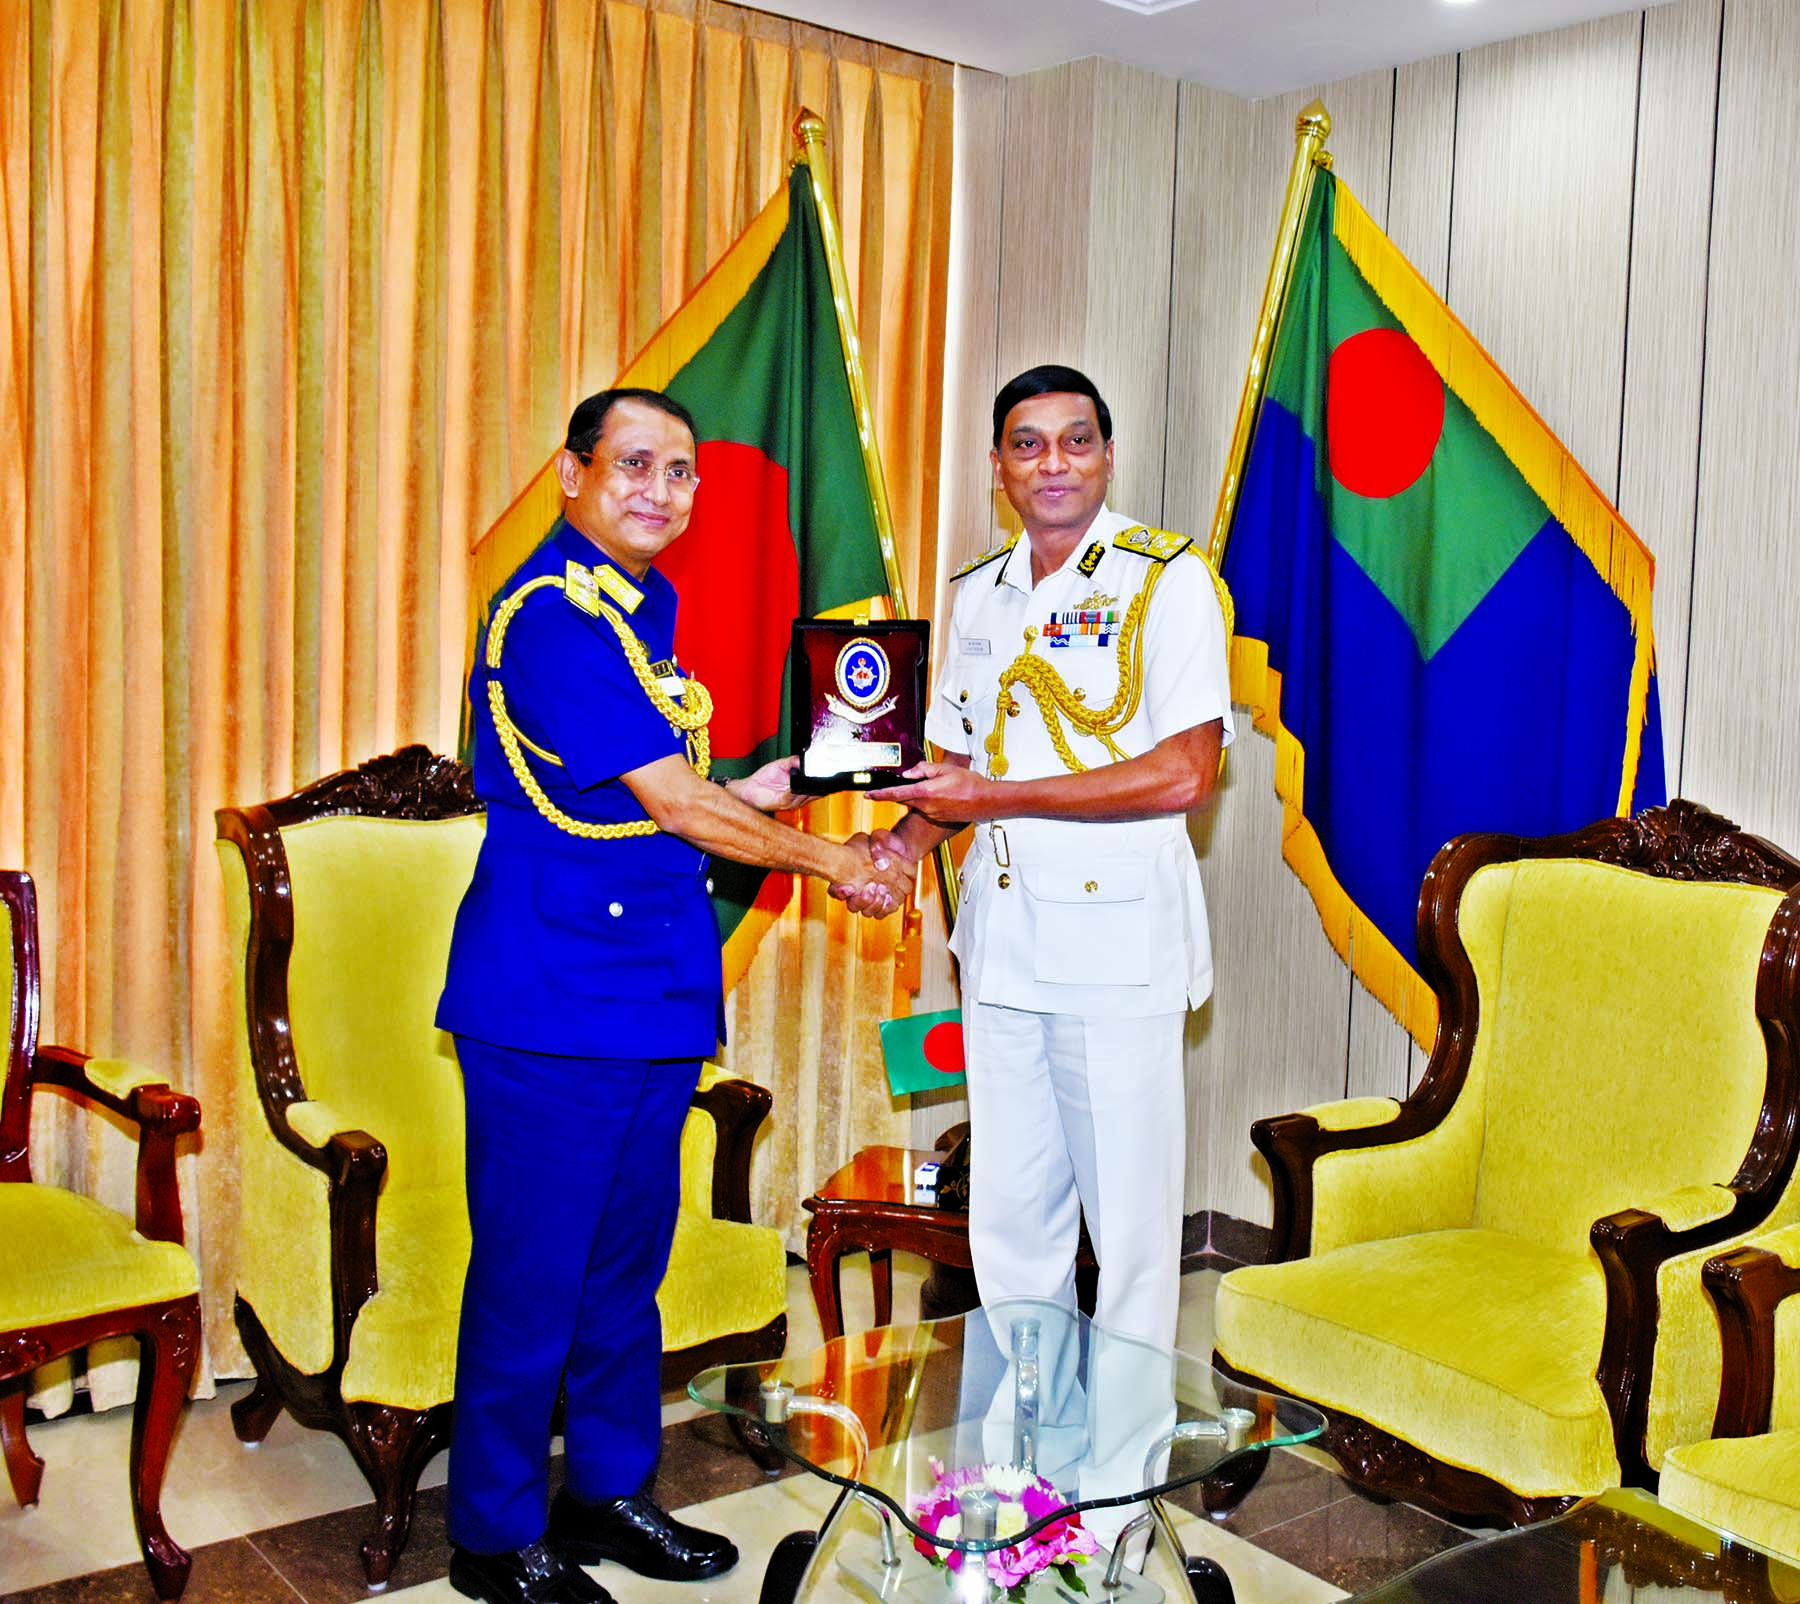 Director General of Indian Coastguard Krishnaswamy Natarajan being greeted with a crest by his Bangladesh counterpart Rear Admiral M Ashraful Haque at the Headquarters of Bangladesh Coastguard in the city on Monday.